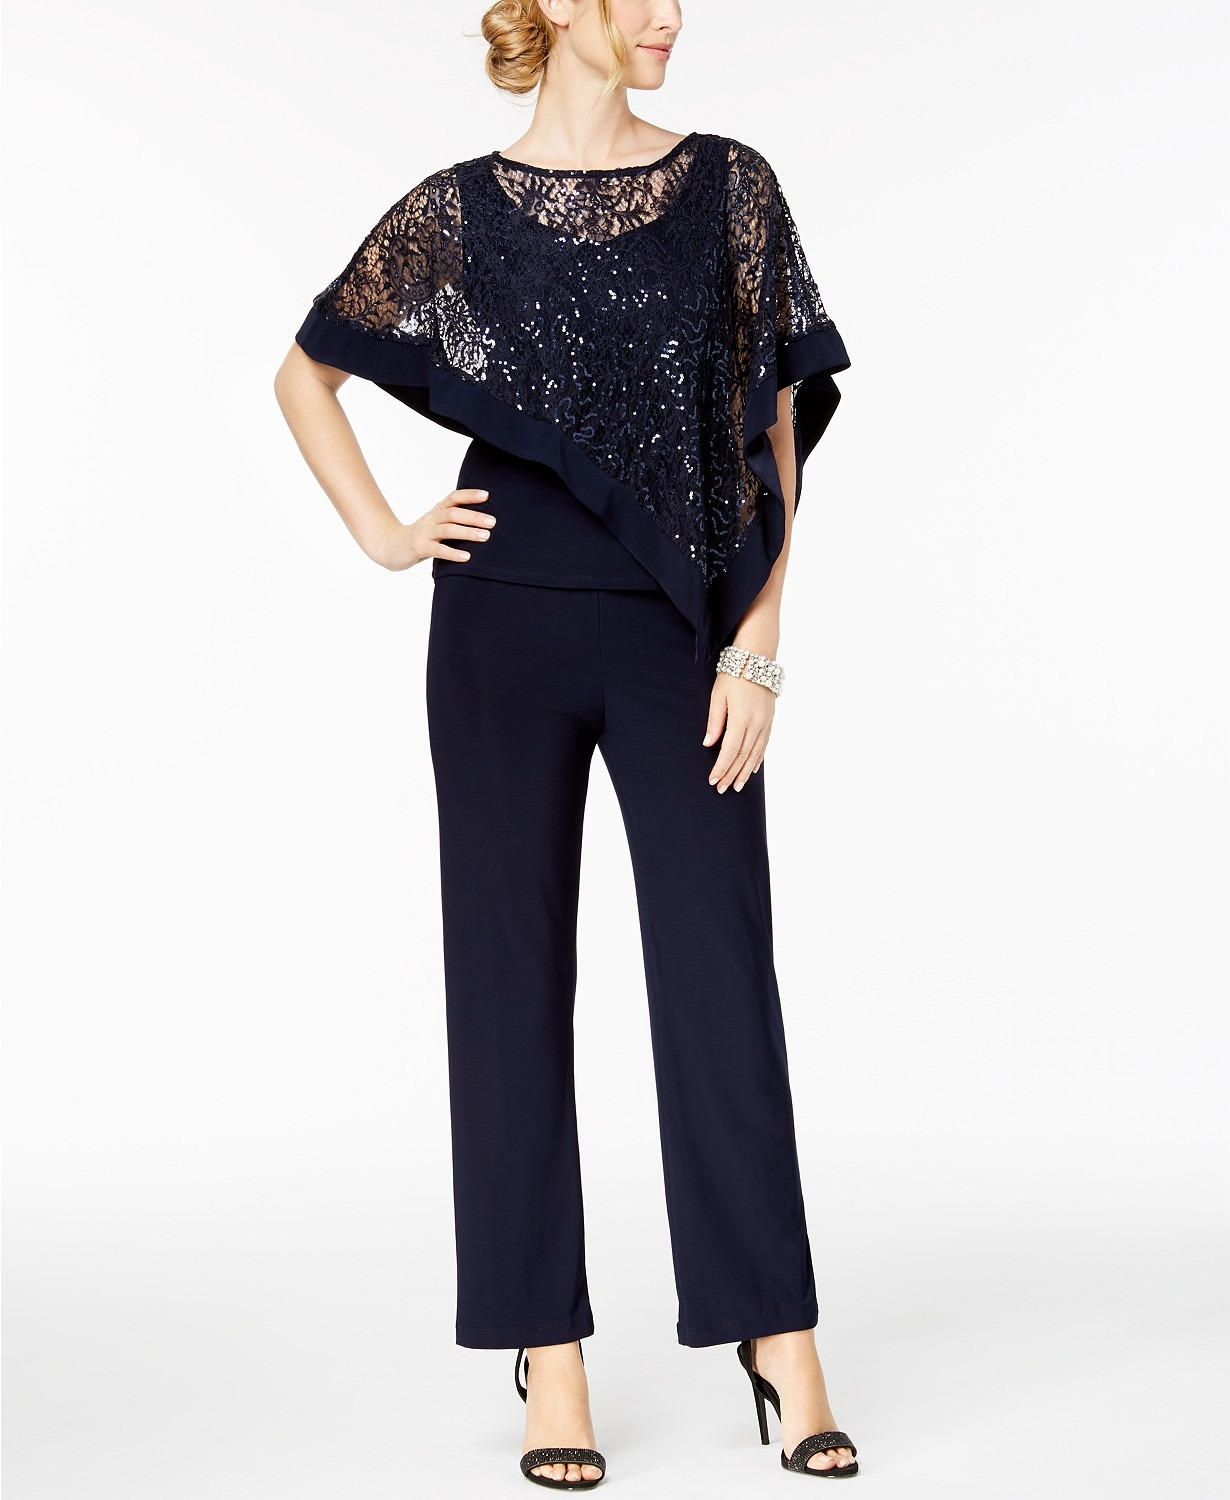 Macys navy mother of the bride sequin pant set with semi sheer overlay